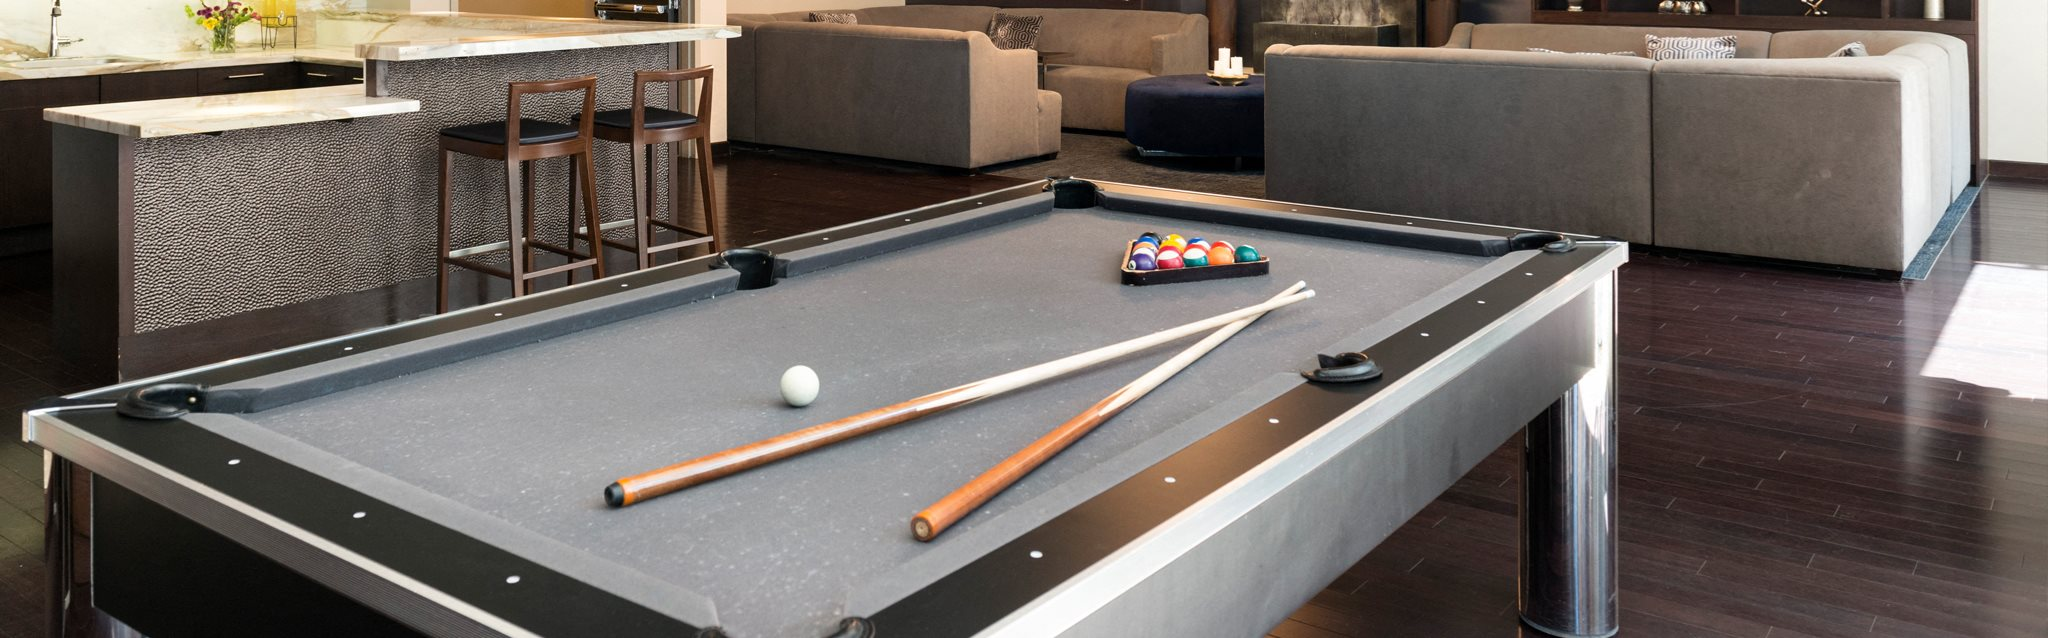 Clubhouse with Billiards at 1600 Vine Apartment Homes, Hollywood, California